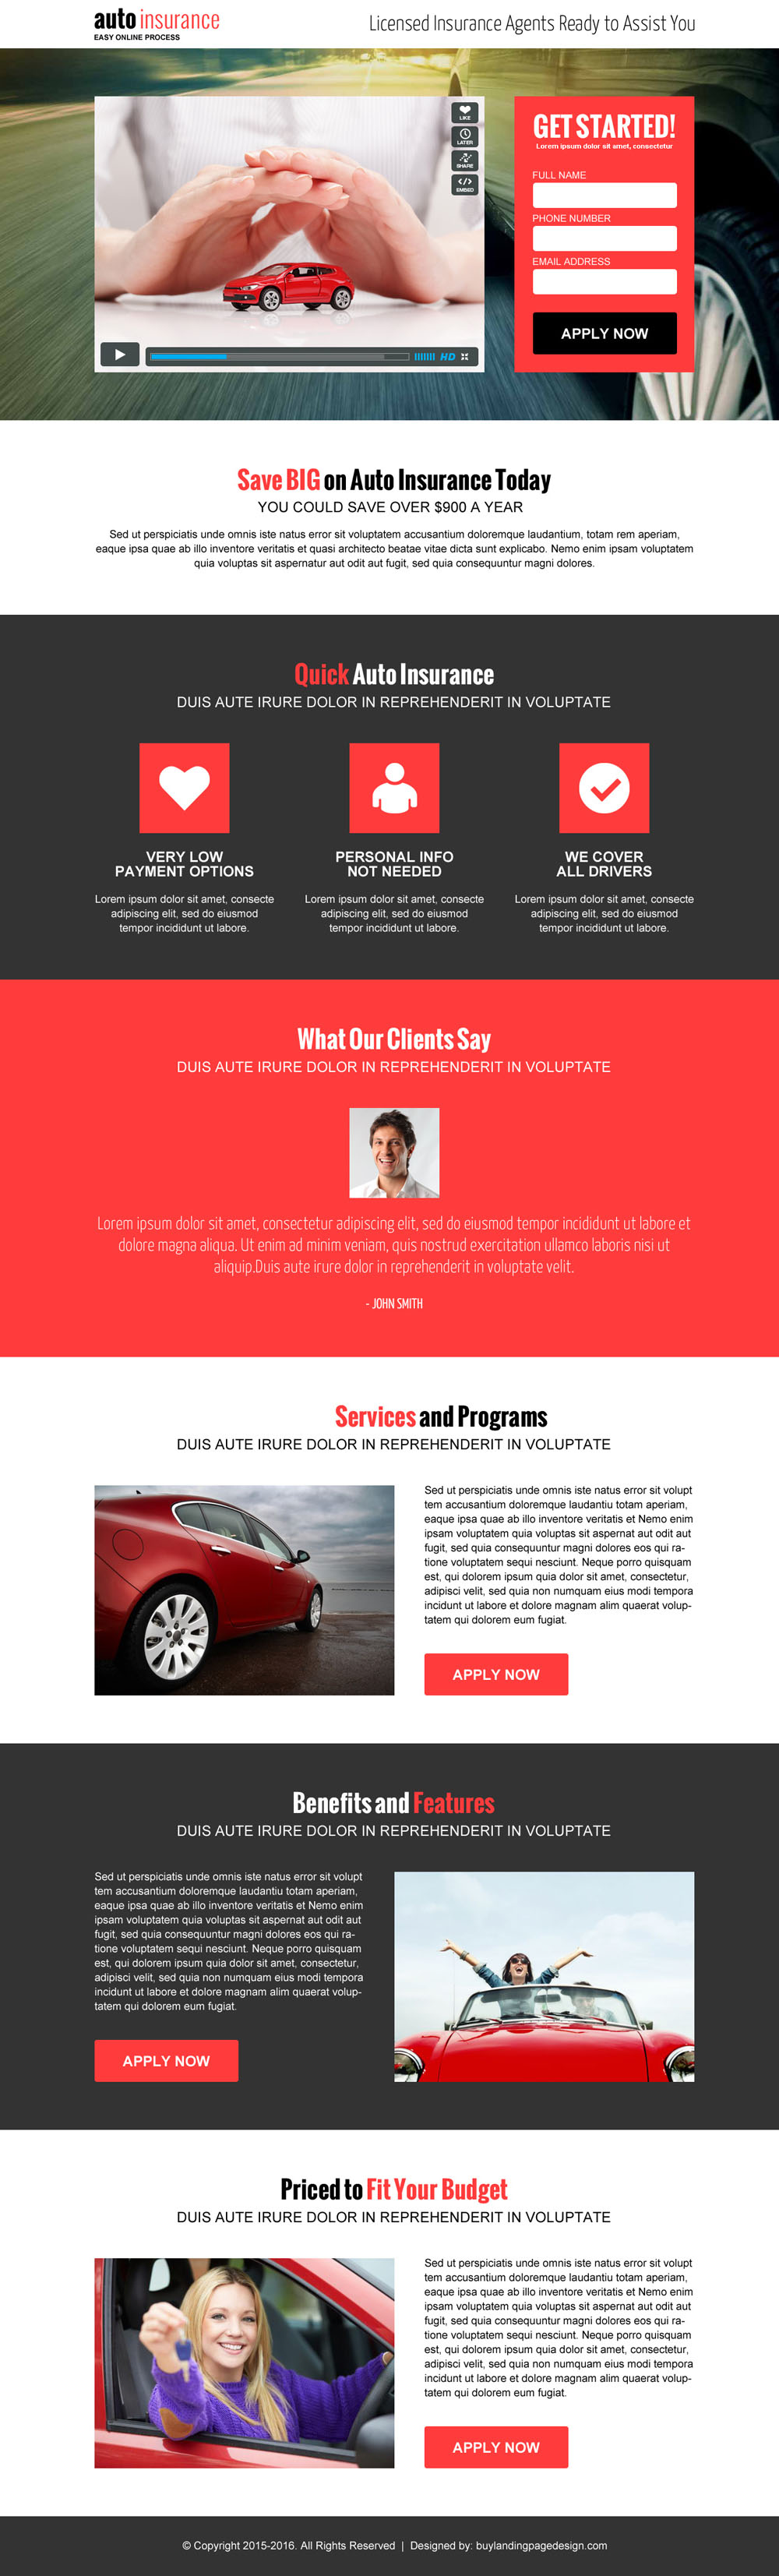 auto-insurance-lead-capture-converting-video-landing-page-design-039